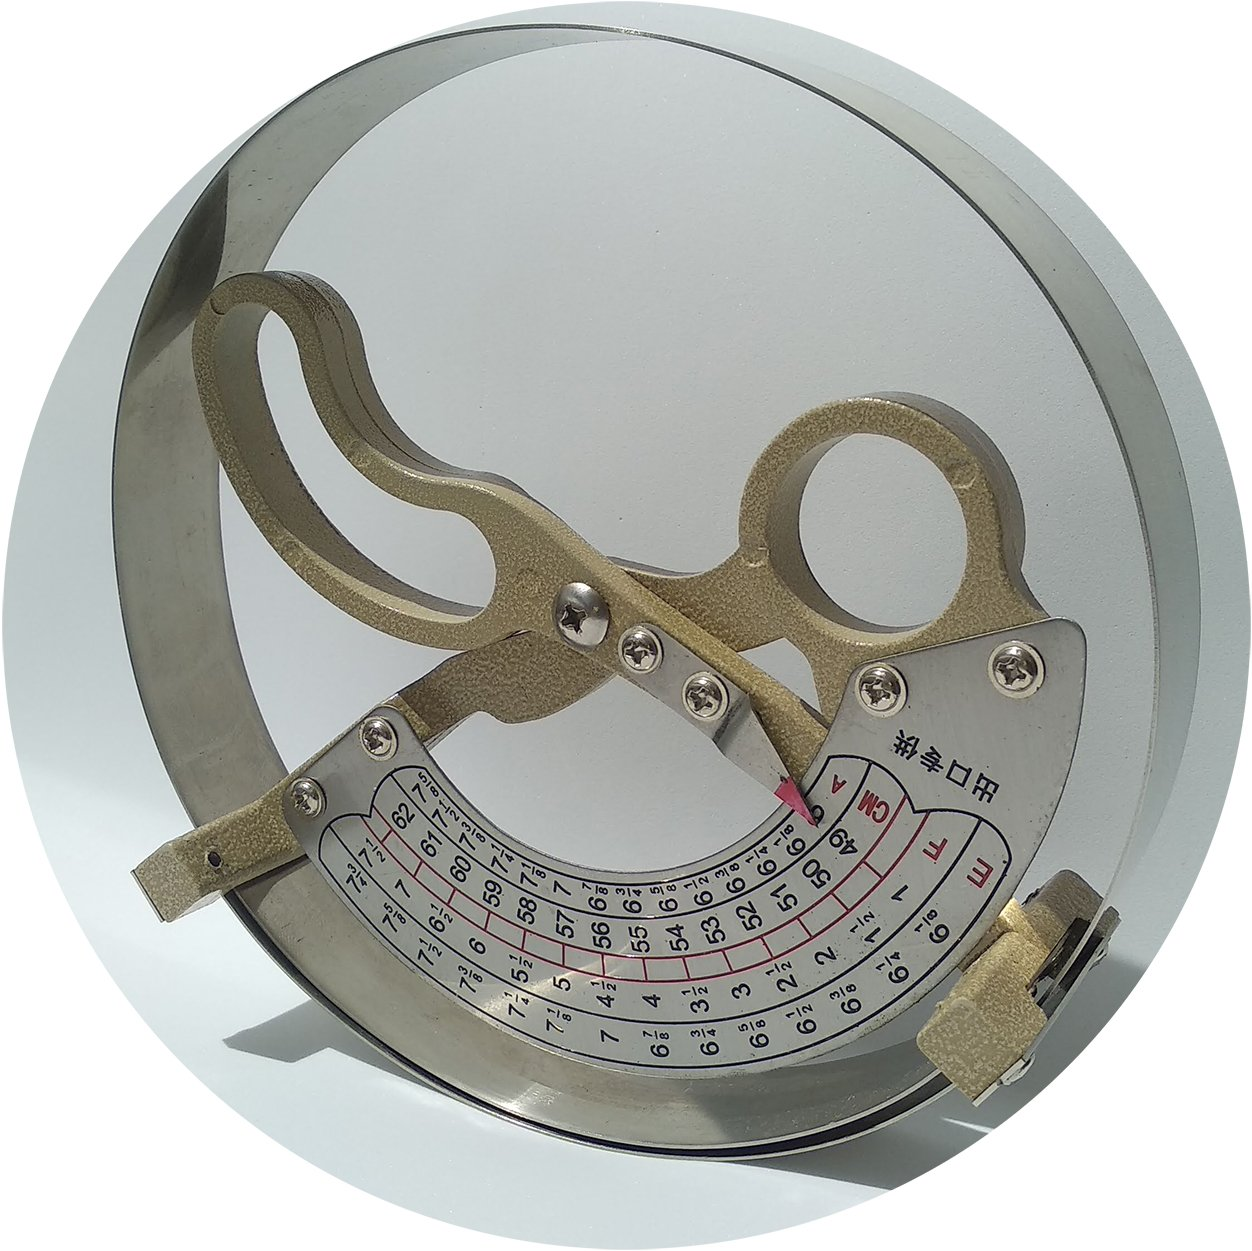 Hat Measuring Tool Size Measure Ruler Stainless Steel Handle Scale Ruler Sizers AKIZON WS-001-HAT-TOOL-62